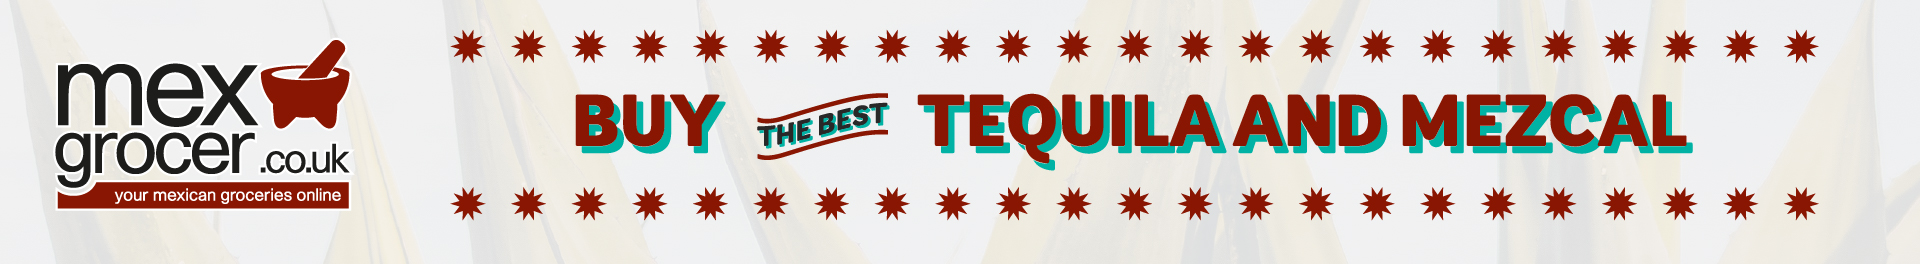 The original and largest only Tequila & Mezcal Fest in the UK